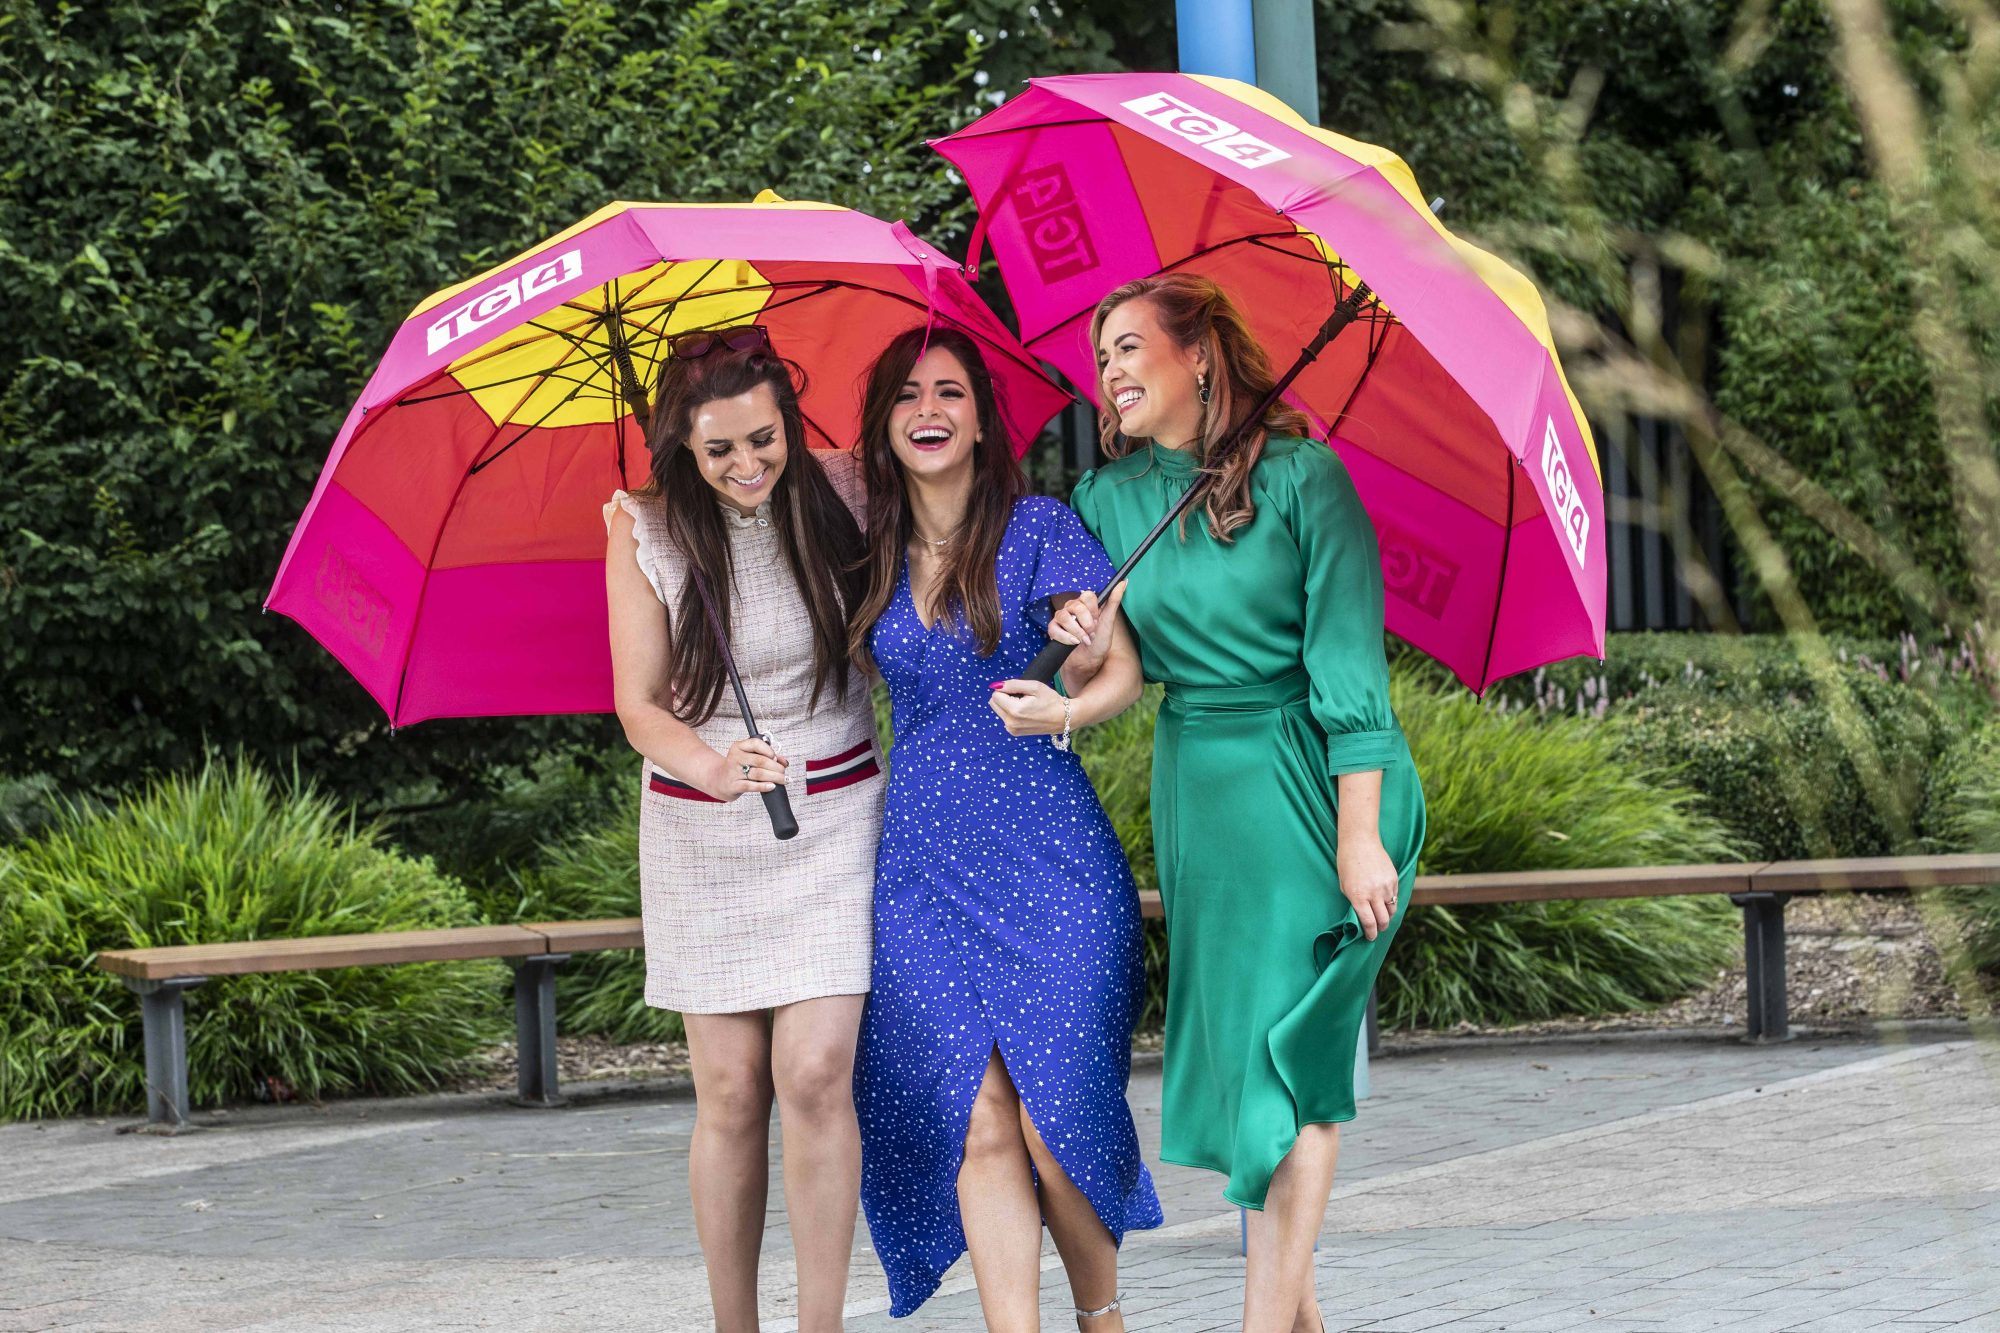 Mairead Ní Chuaig, Fiona Ní Fhlaithearta and Caitlín Nic Aoidh pictured at TG4's Autumn Schedule Launch in the stunning Fitzgerald Park in Cork.  Picture Clare Keogh